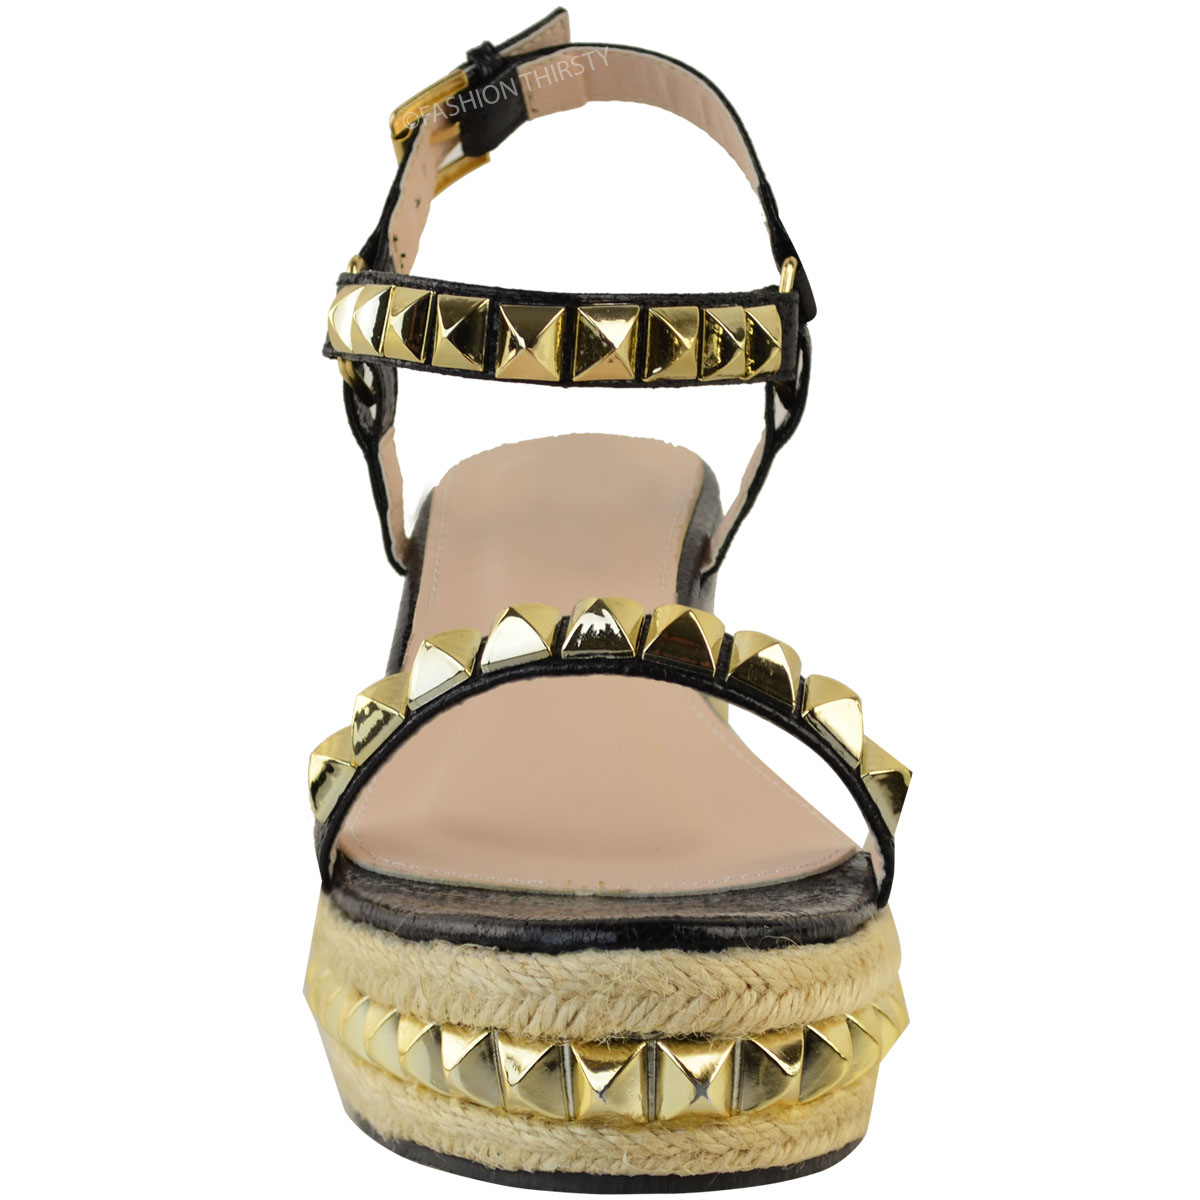 Ladies-Womens-Studded-Low-Wedge-Espadrille-Sandals-Platform-Rose-Gold-Shoes-Size thumbnail 16